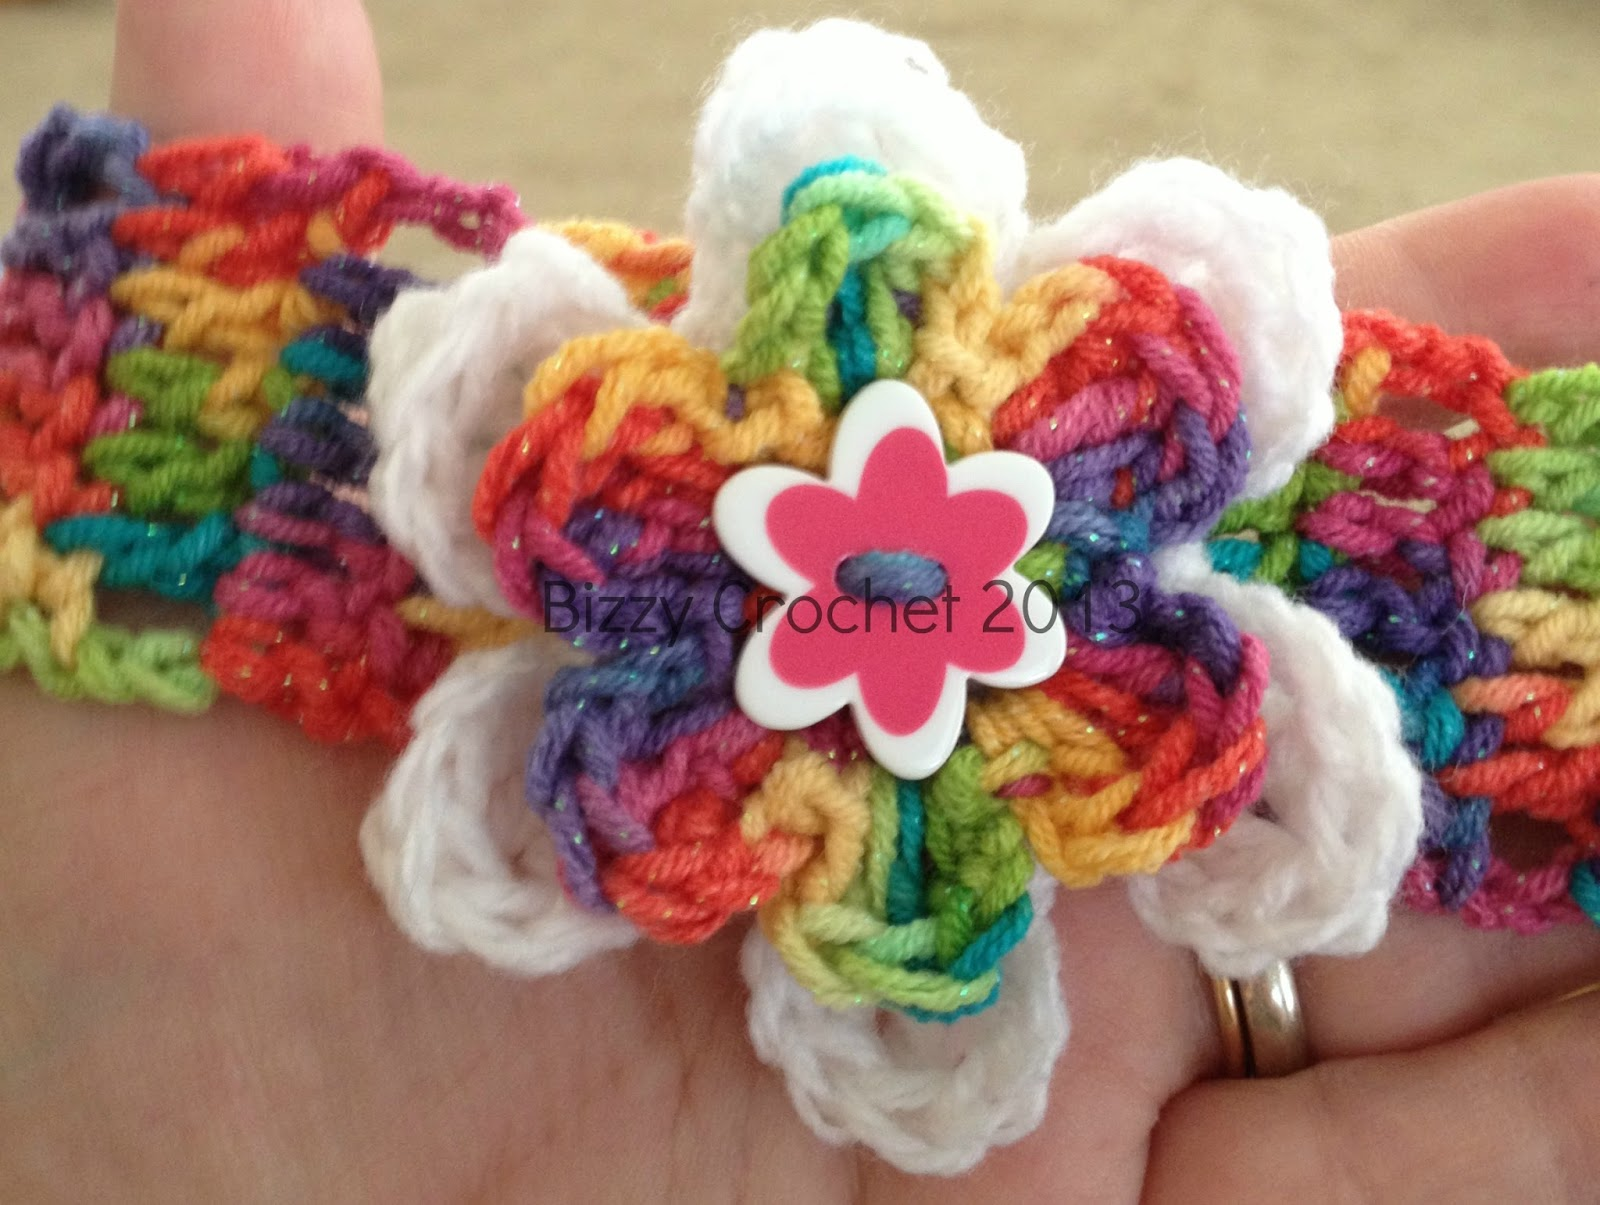 Bizzy Crochet: Layered Button Flower Accent- Free Pattern